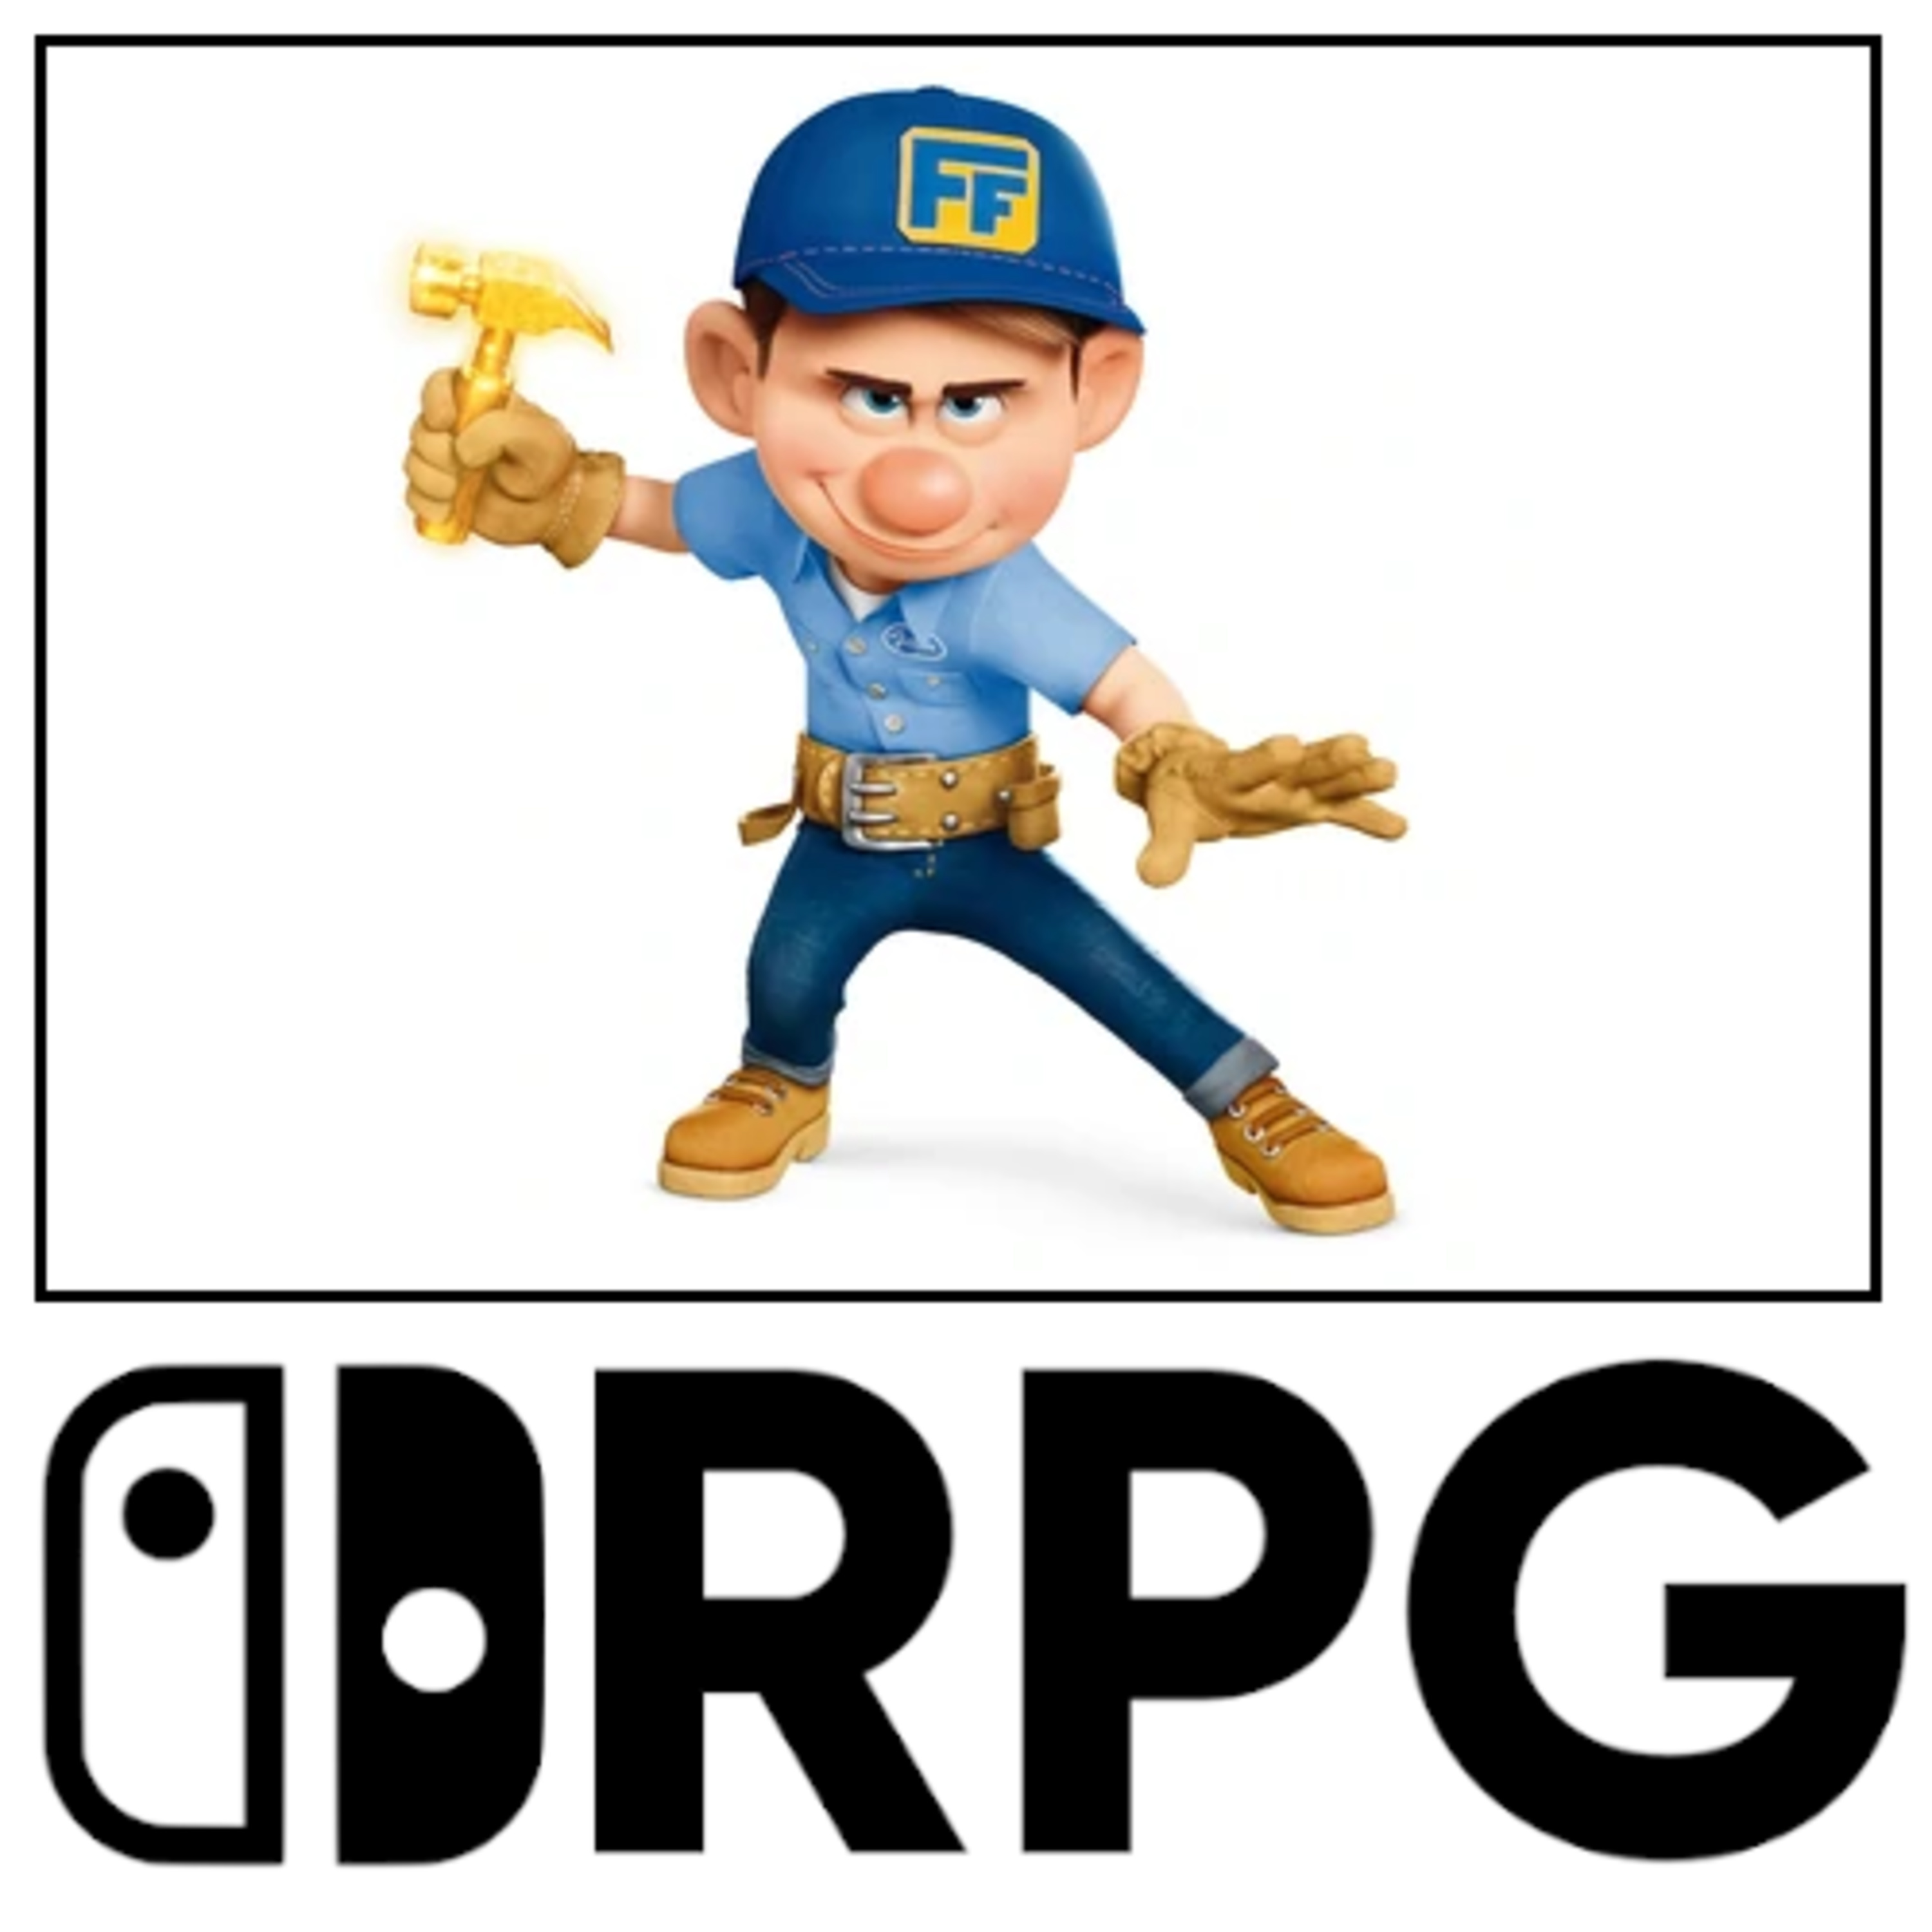 Episode 66 - Game Mechanics we'd like to see in RPGs! | Switch RPG Podcast